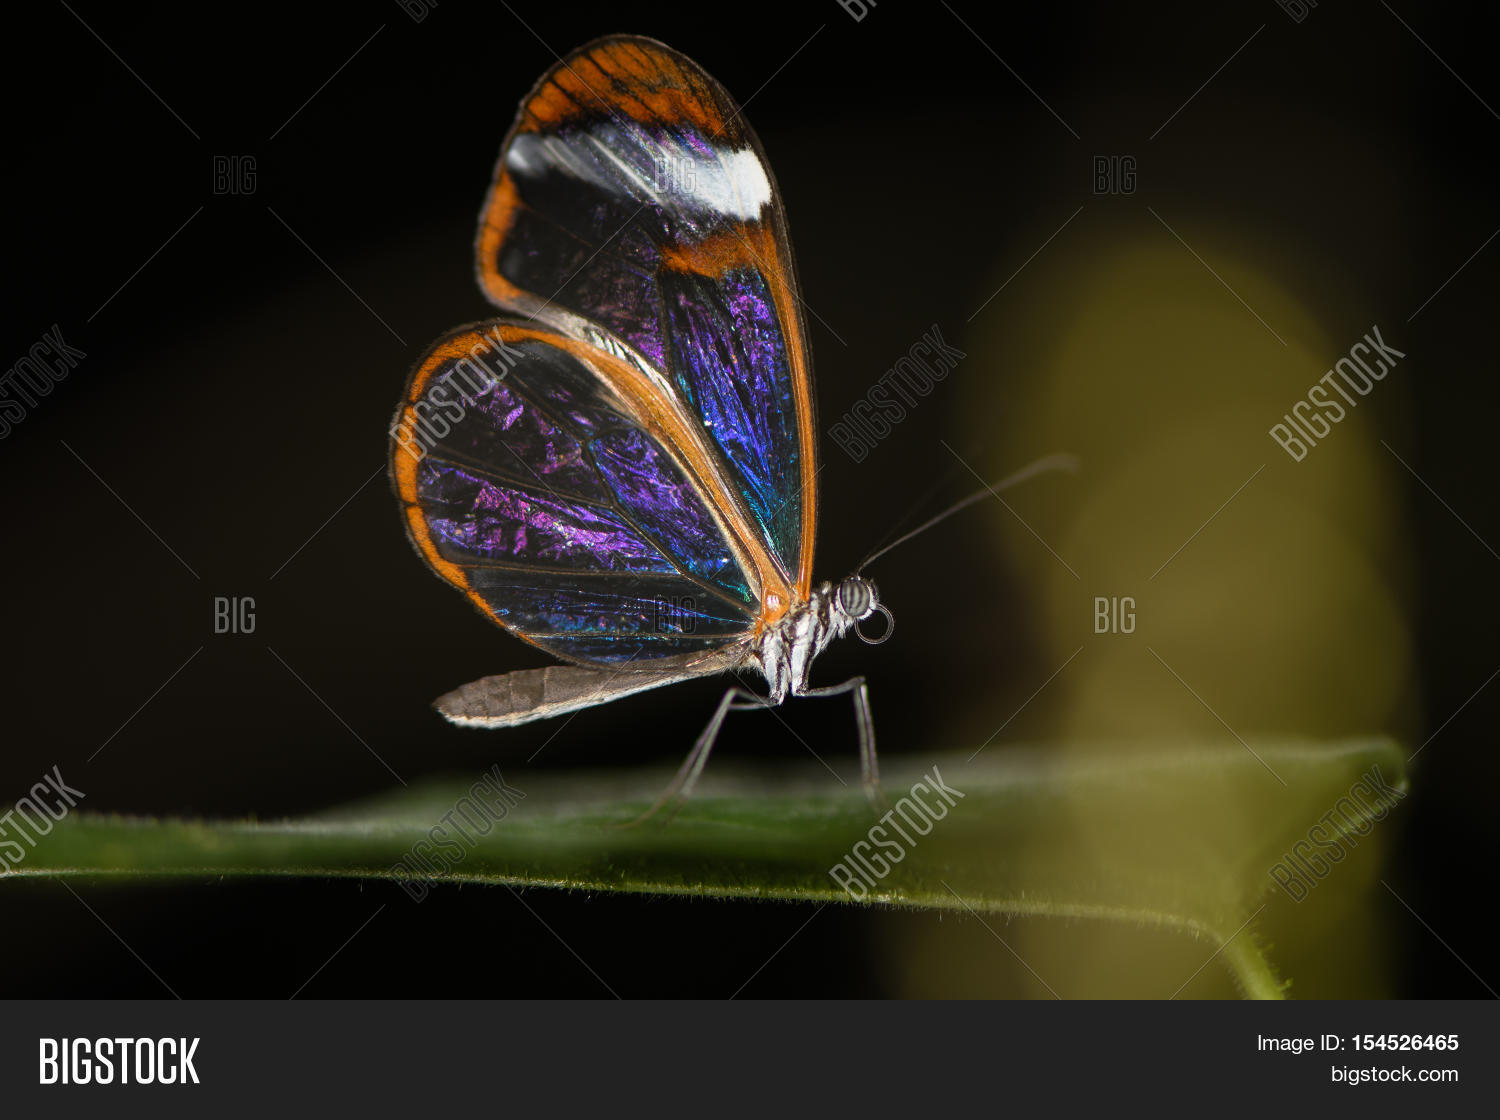 Glasswinged Butterfly Image Photo Free Trial Bigstock